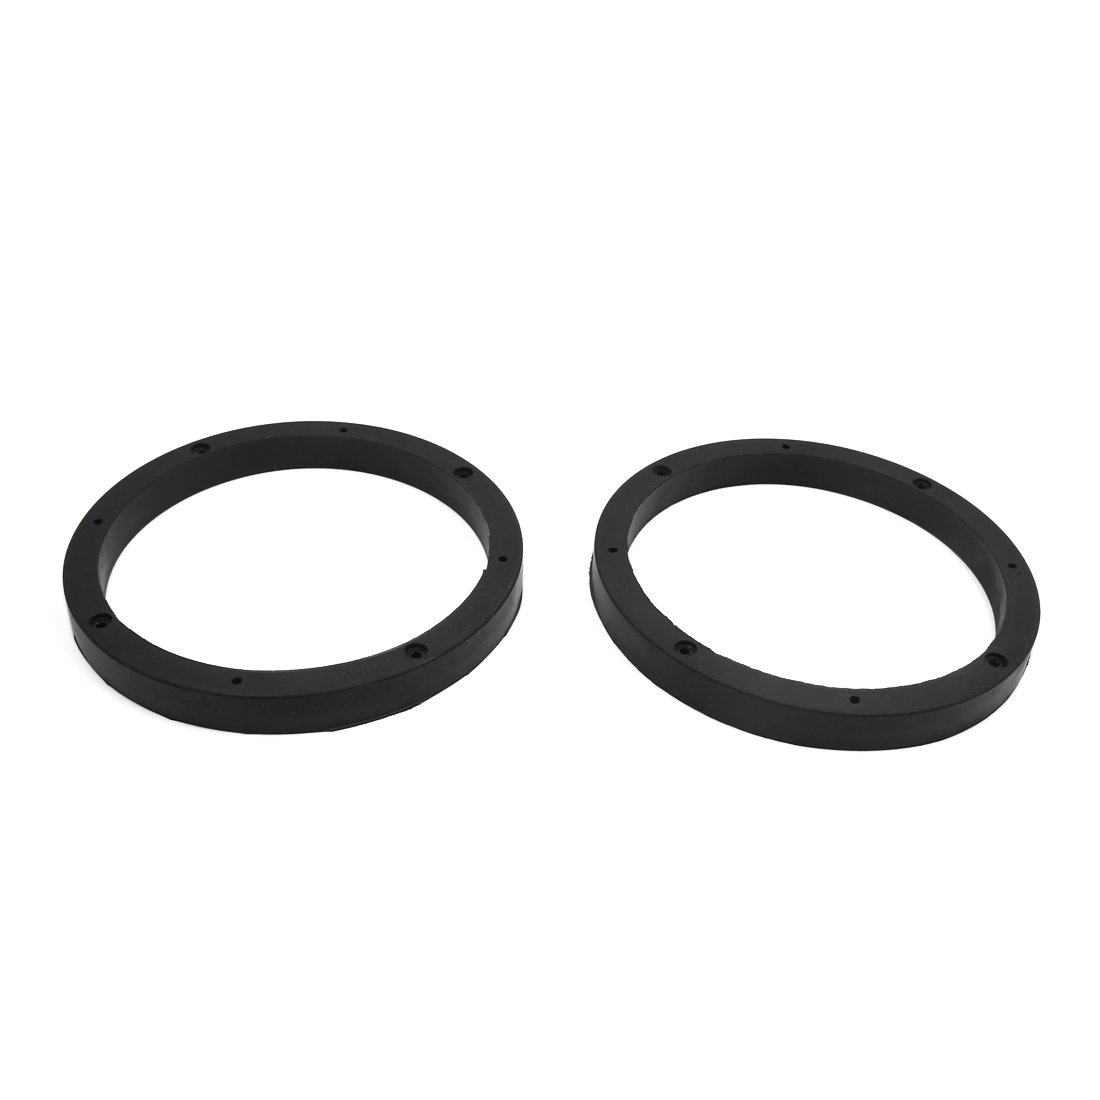 uxcell 2pcs Universal Black 6.8'' Car Stereo Audio Speaker Mounting Spacer Rings Bracket